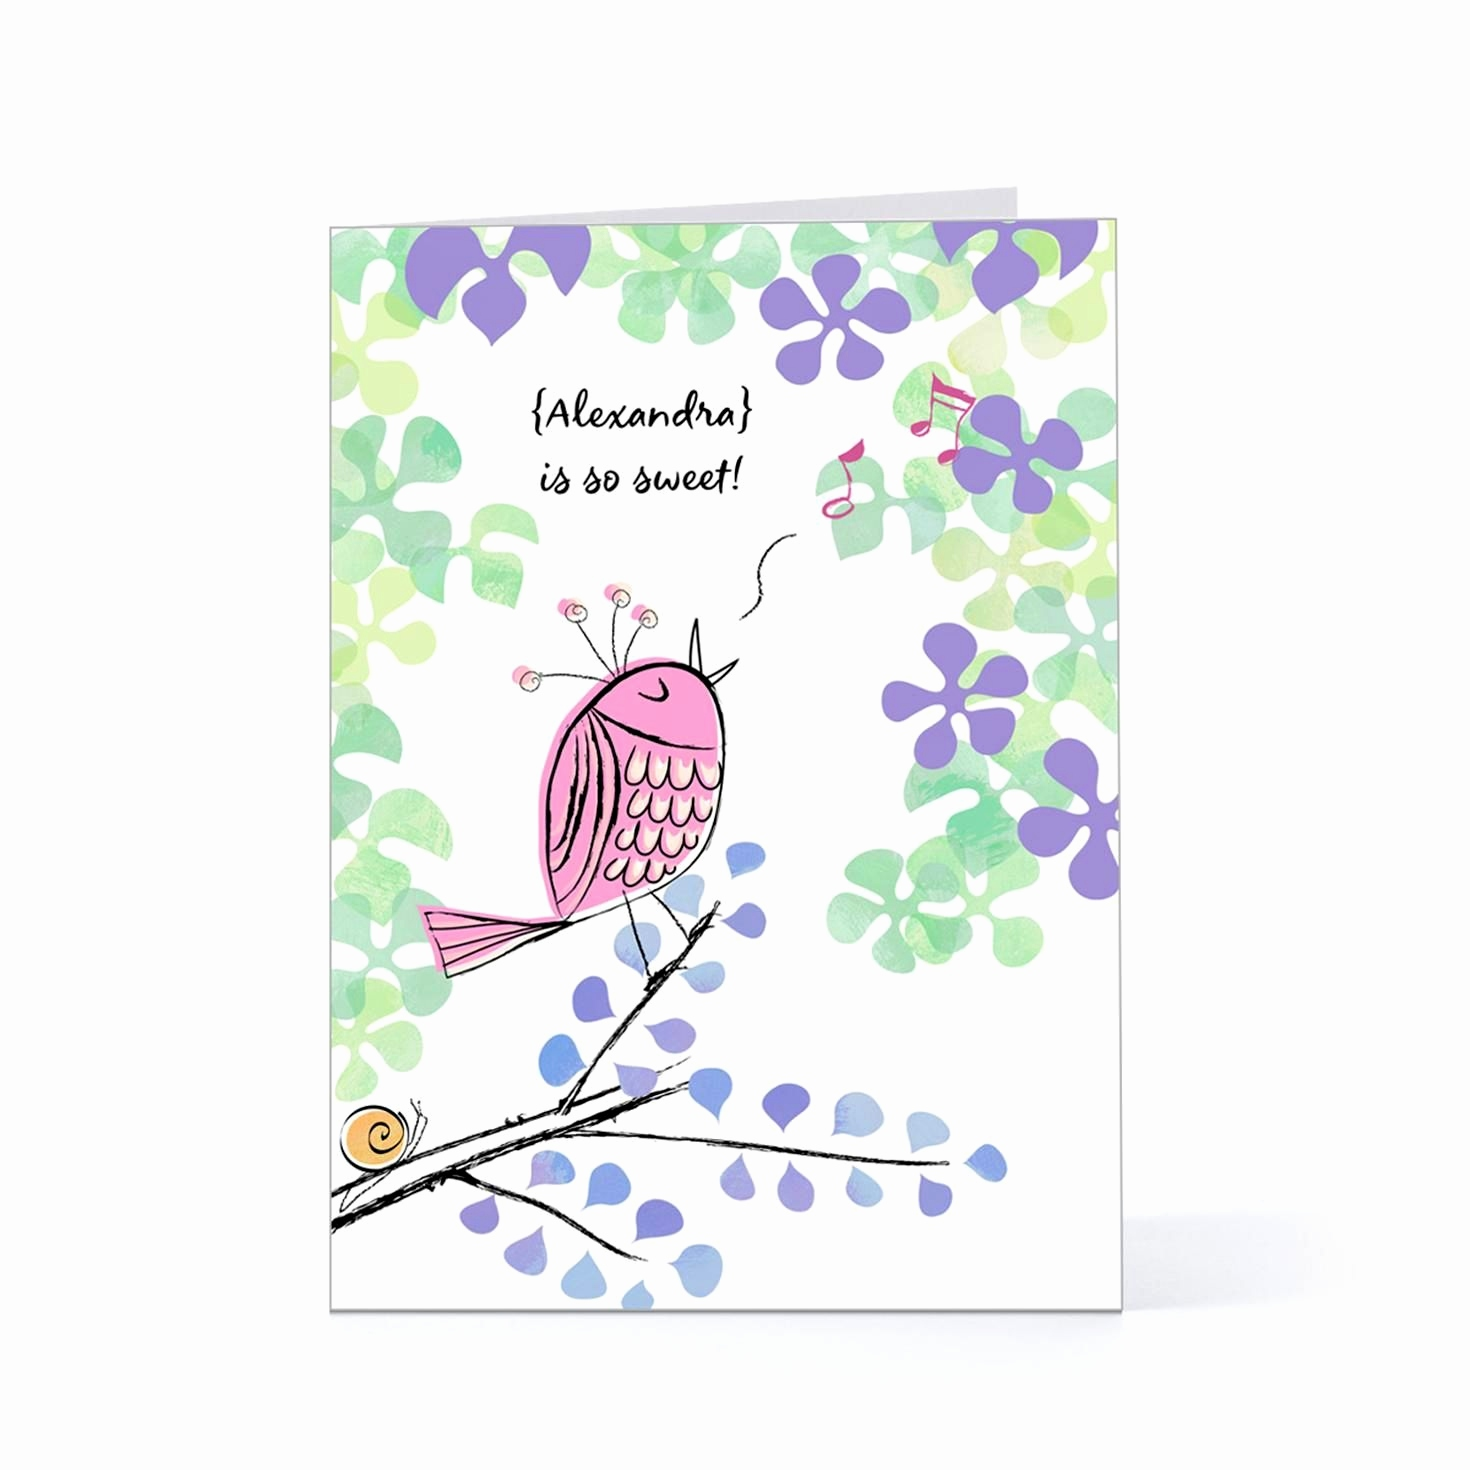 singing birthday cards by text message ; singing-birthday-cards-by-text-message-awesome-new-free-singing-birthday-cards-online-of-singing-birthday-cards-by-text-message